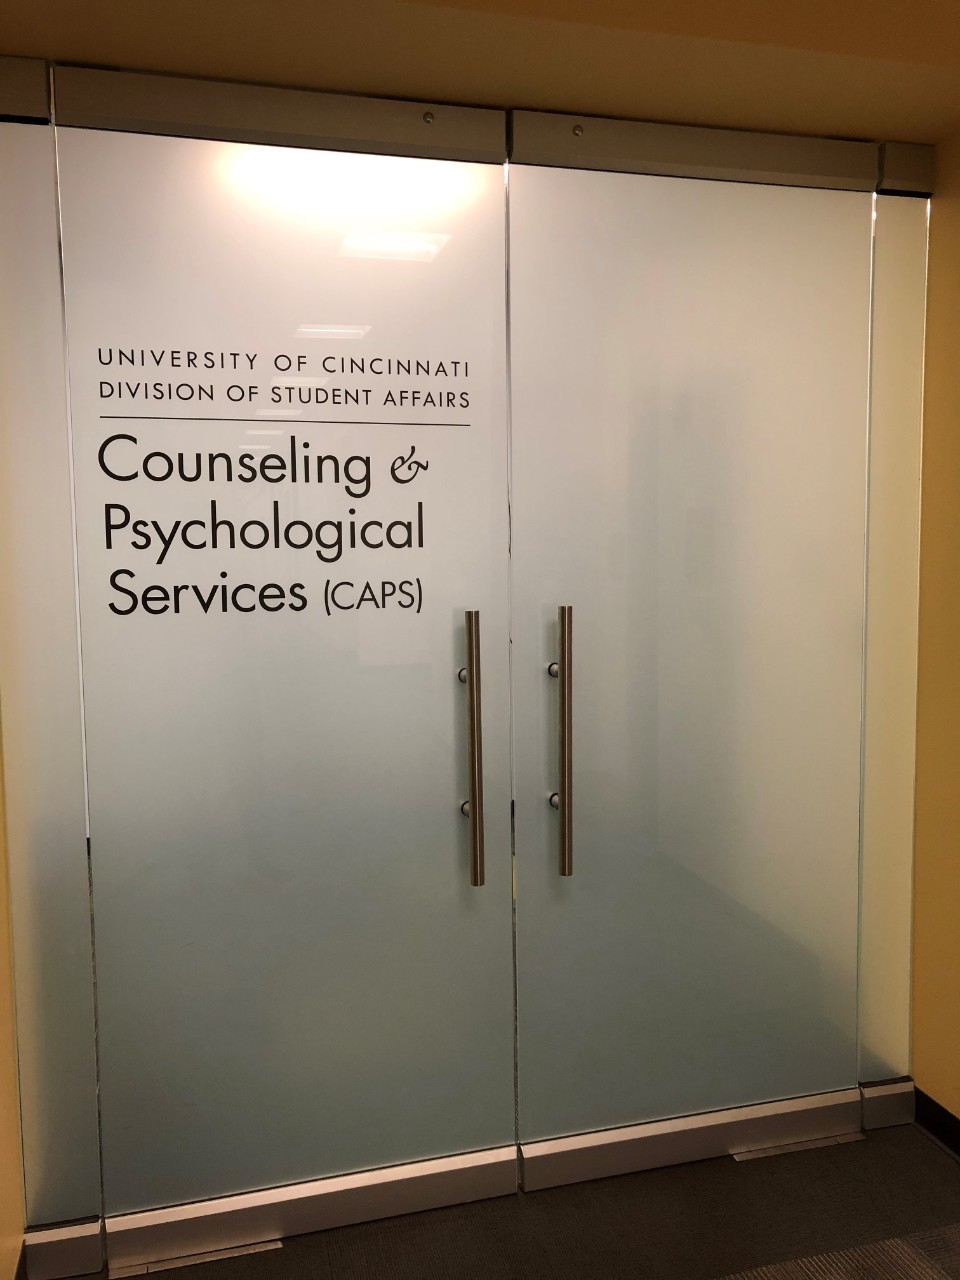 The entrance of UC's Counseling and Psychological Services.